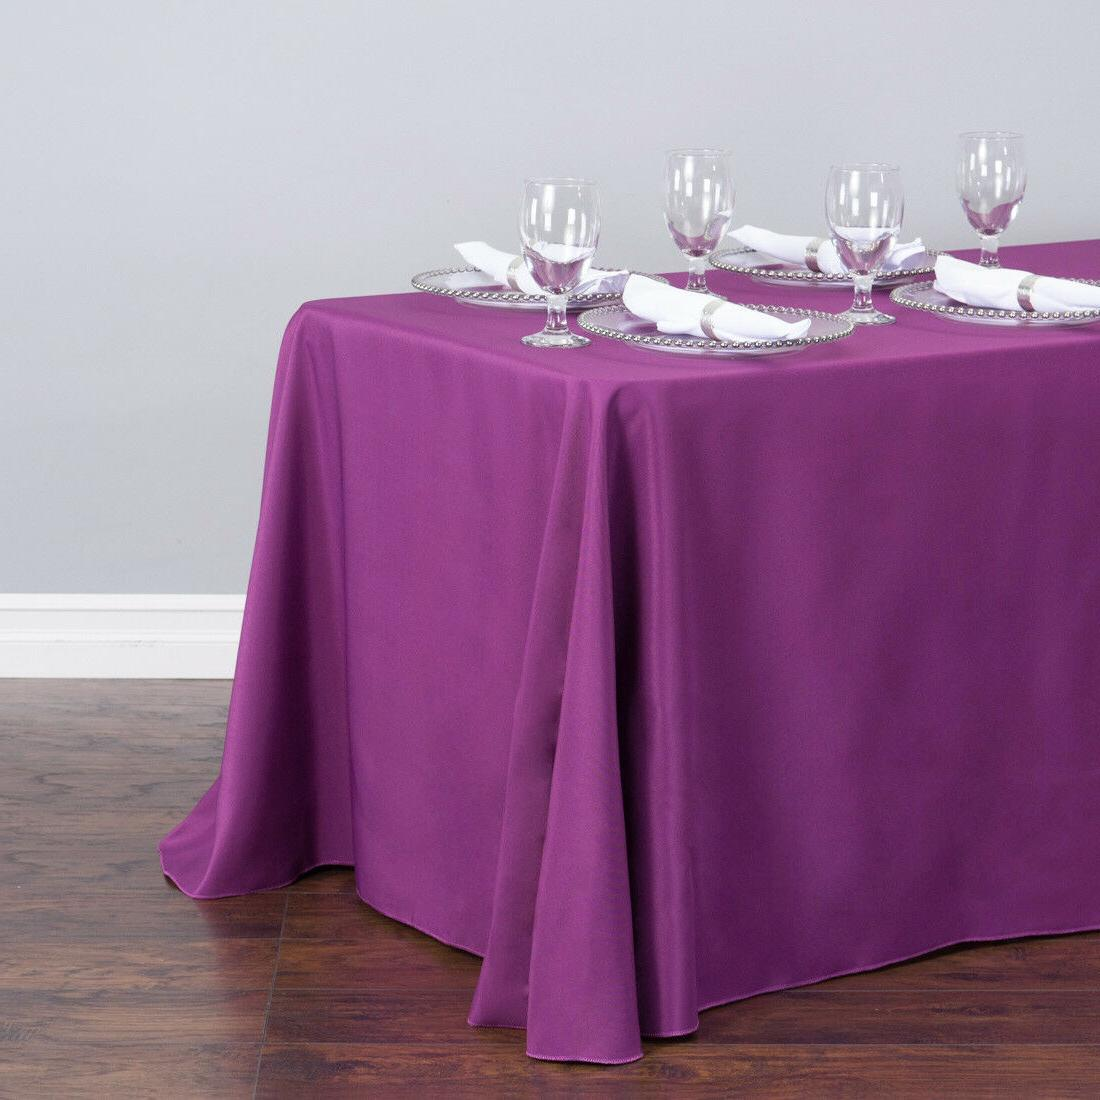 LinenTablecloth in. Rect Poly Color! Wedding Event